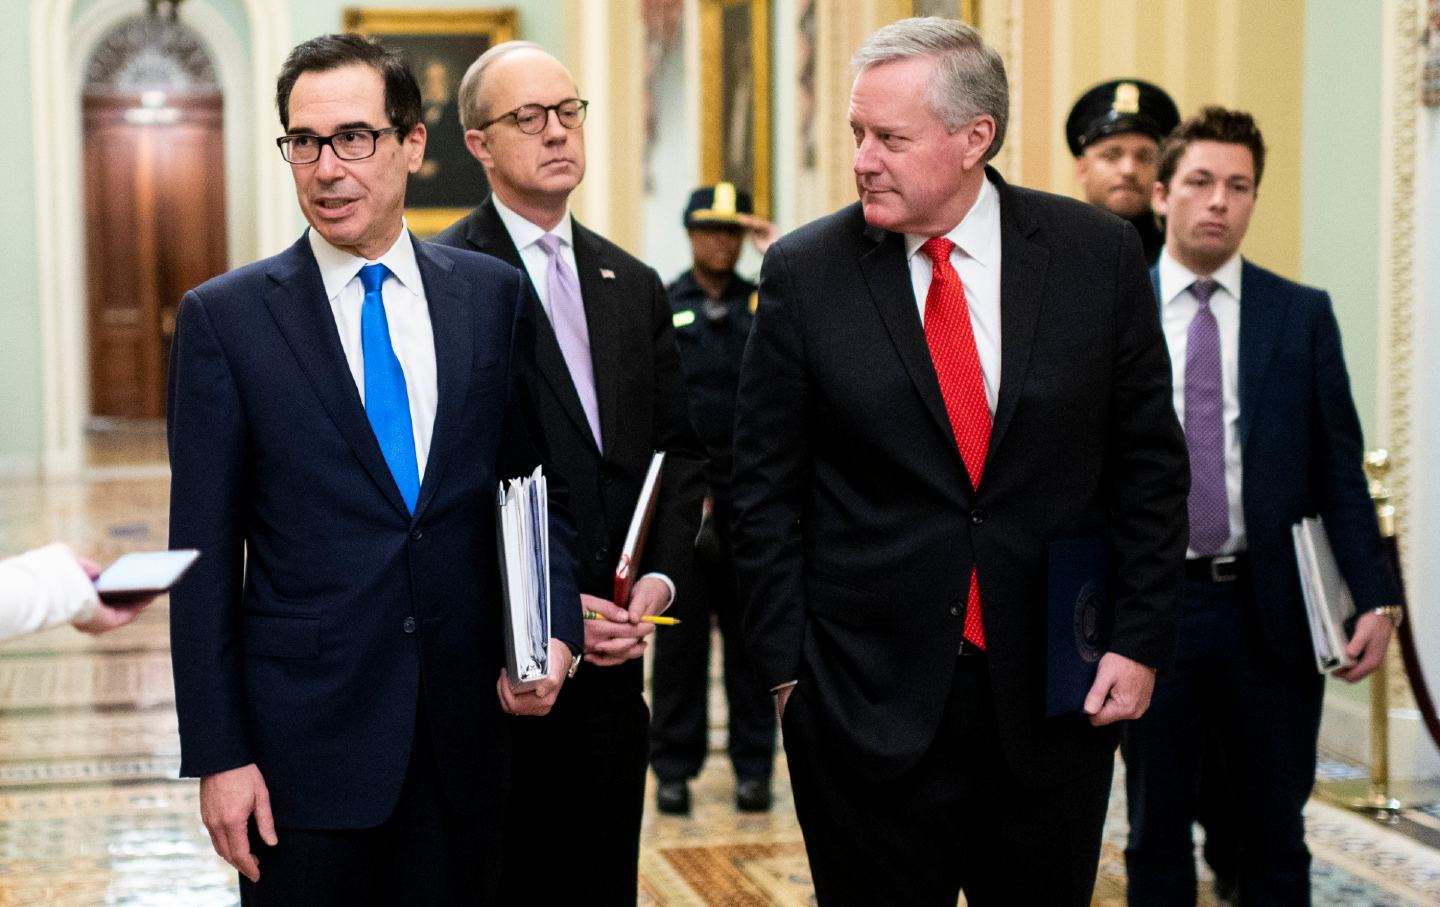 Three men in suits walk down a hallway of the Capitol building.